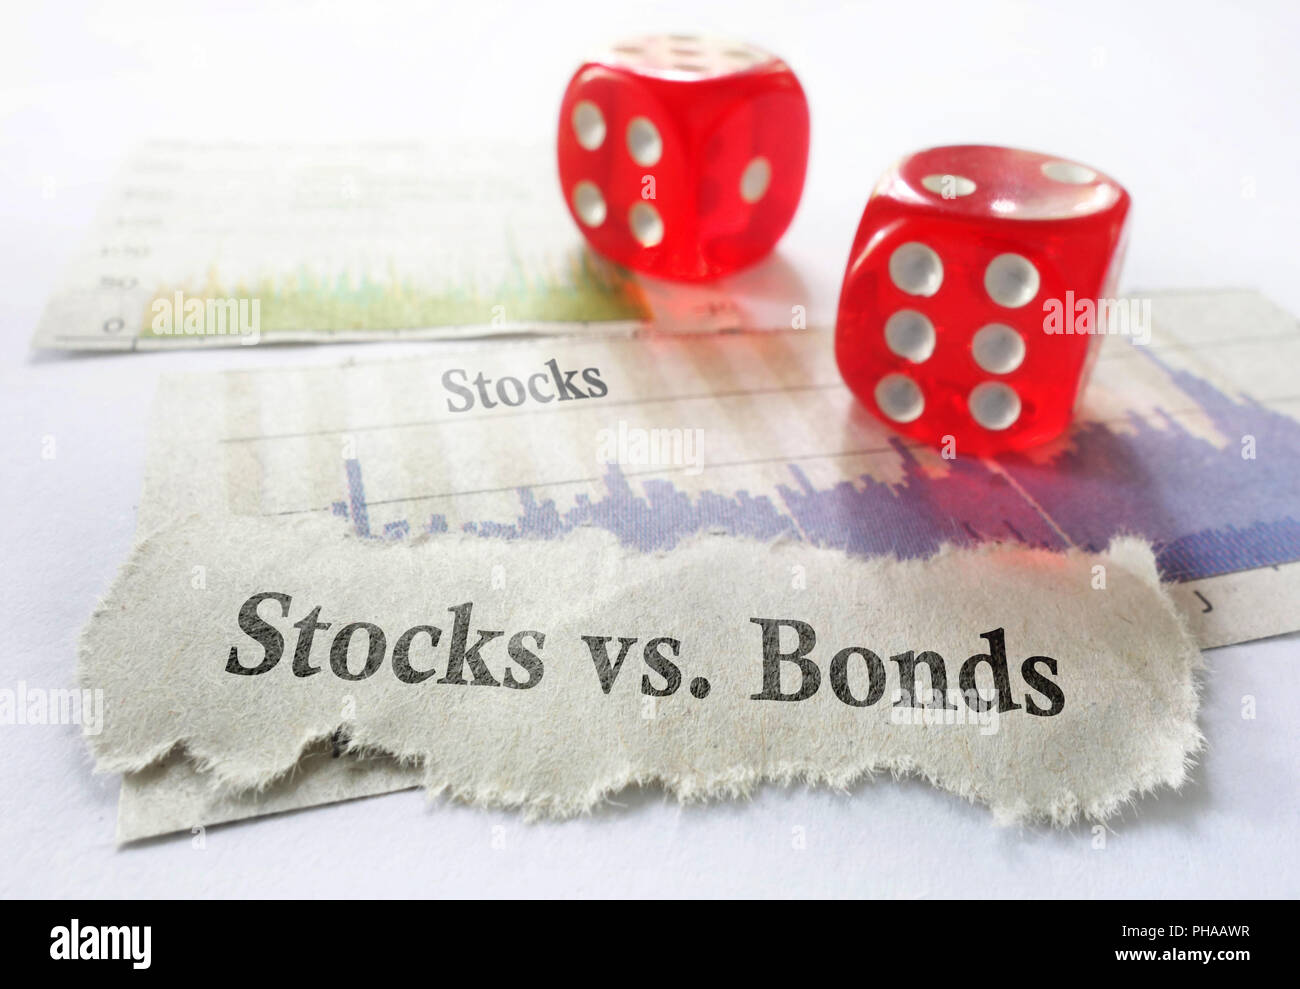 Stocks or Bonds - Stock Image